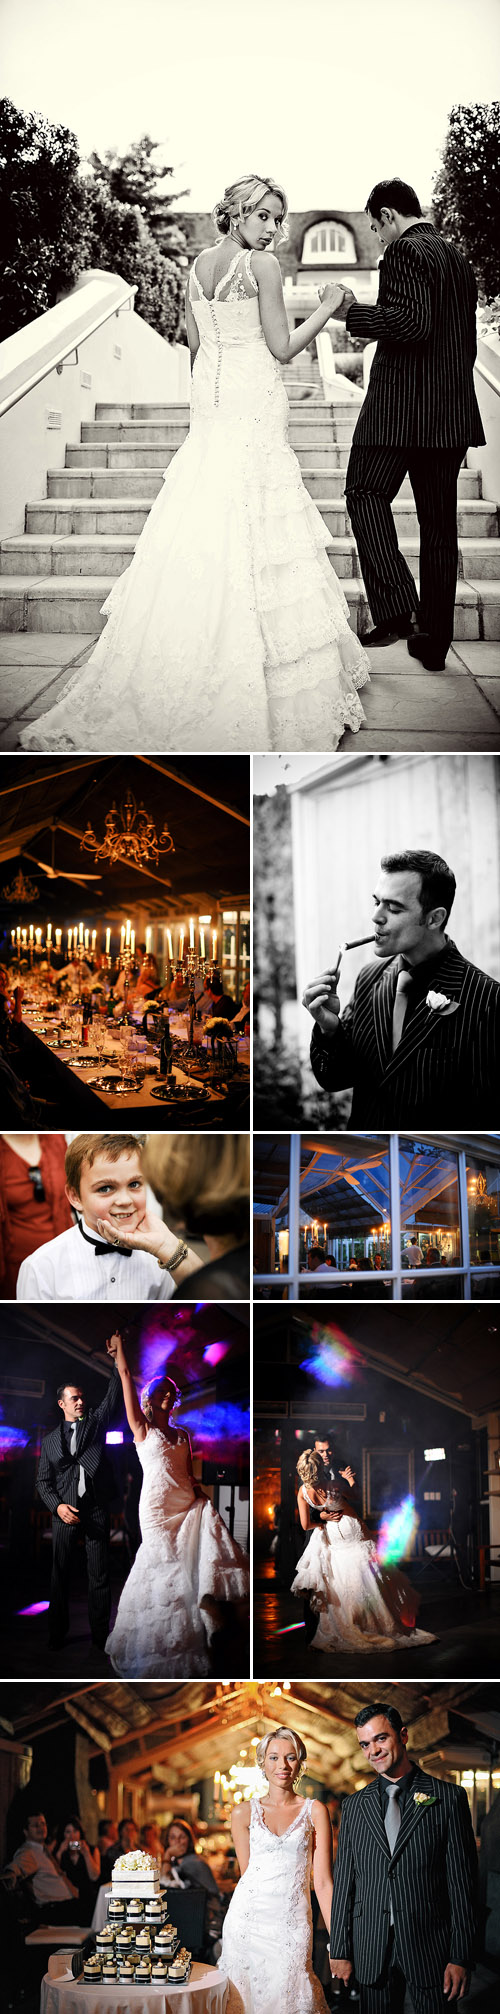 glamorous south african real wedding reception, black, white, gray and silver wedding color palette, images by Eric Uys